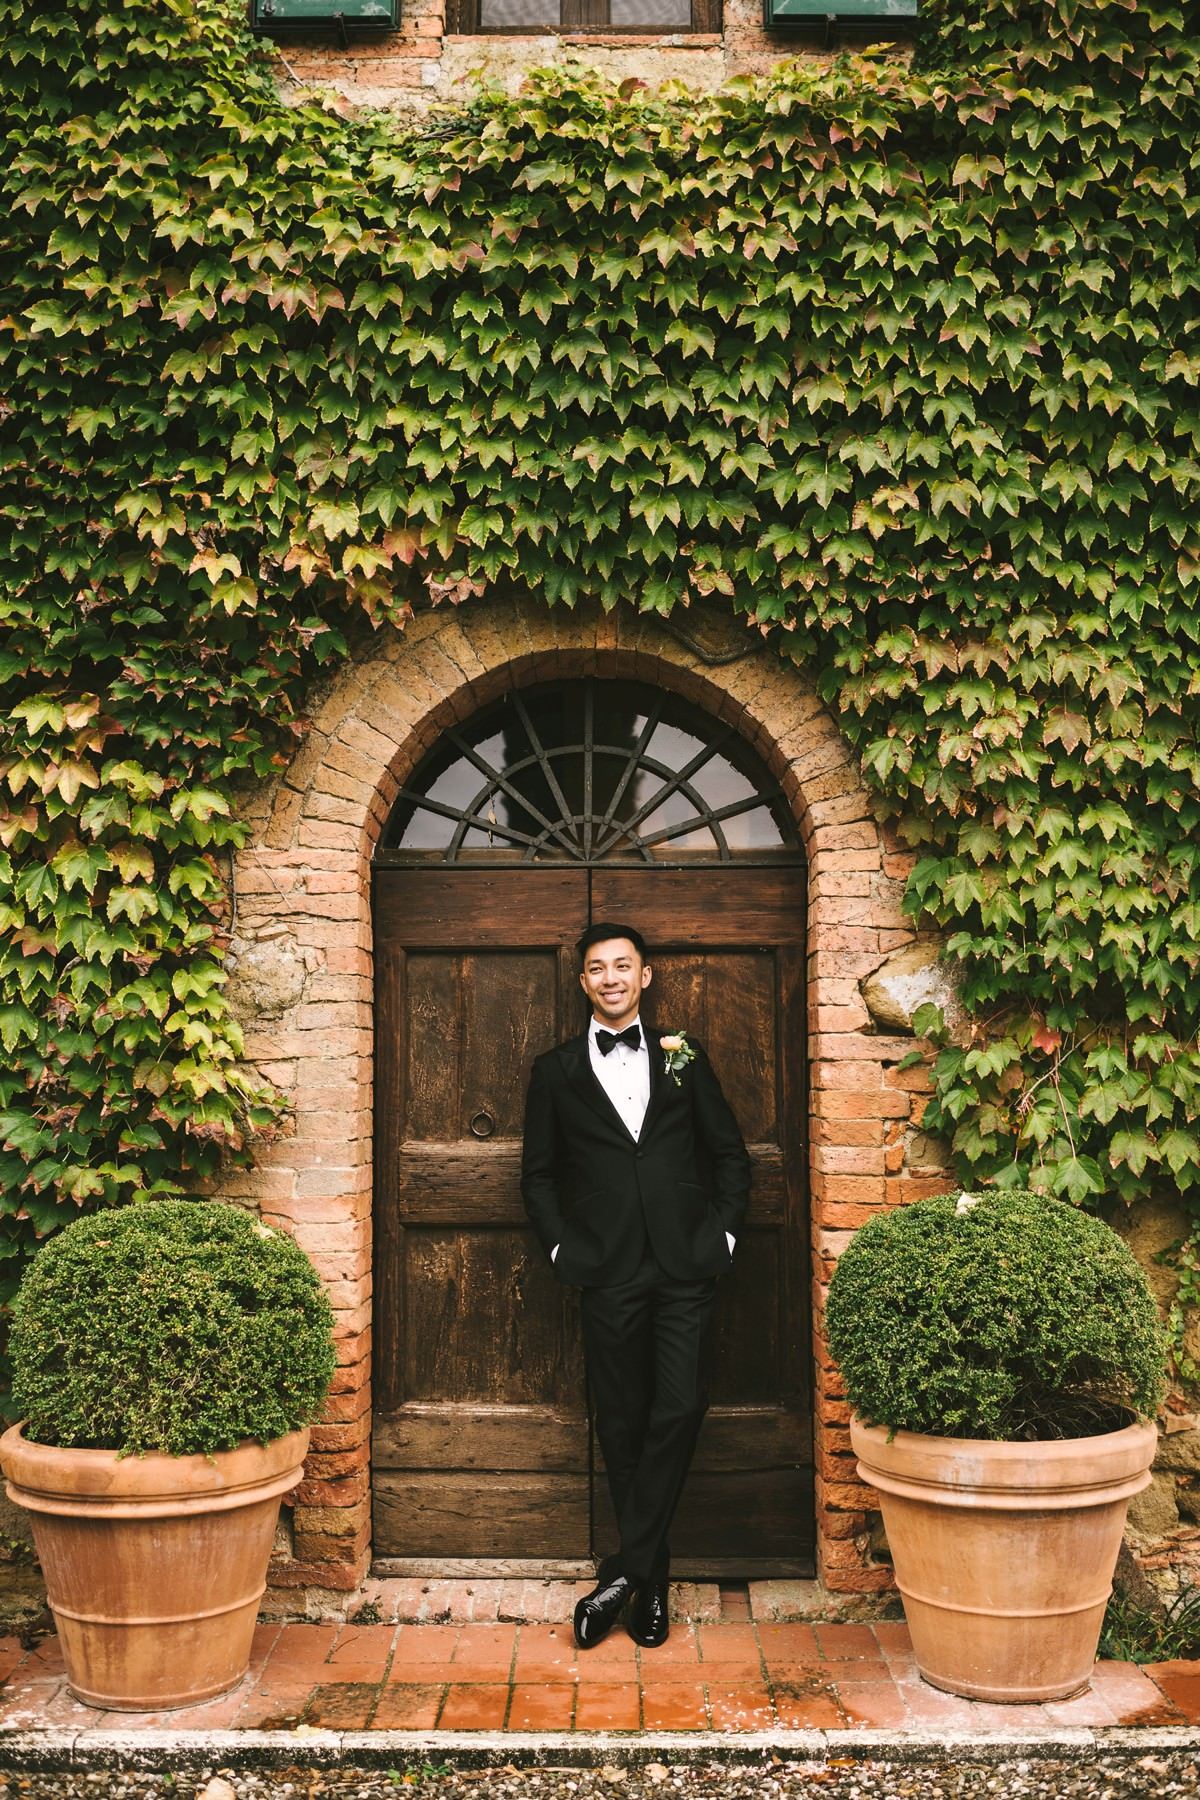 Groom portrait in front of an ancient door in the lovely and beautiful wedding venue of La Fornace in countryside of Tuscany